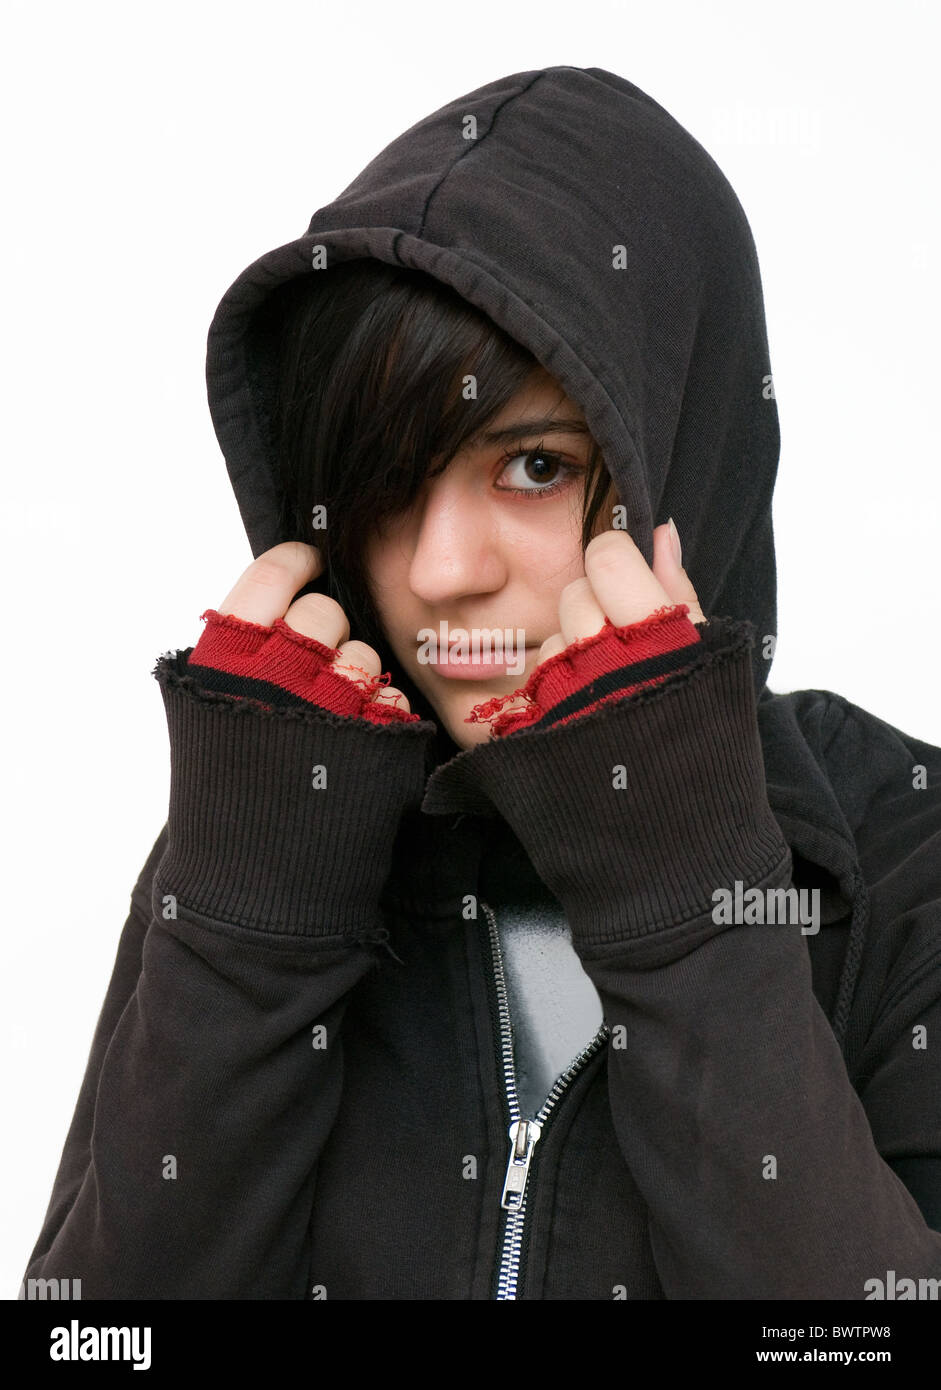 Teenager with hooded jacket - Stock Image